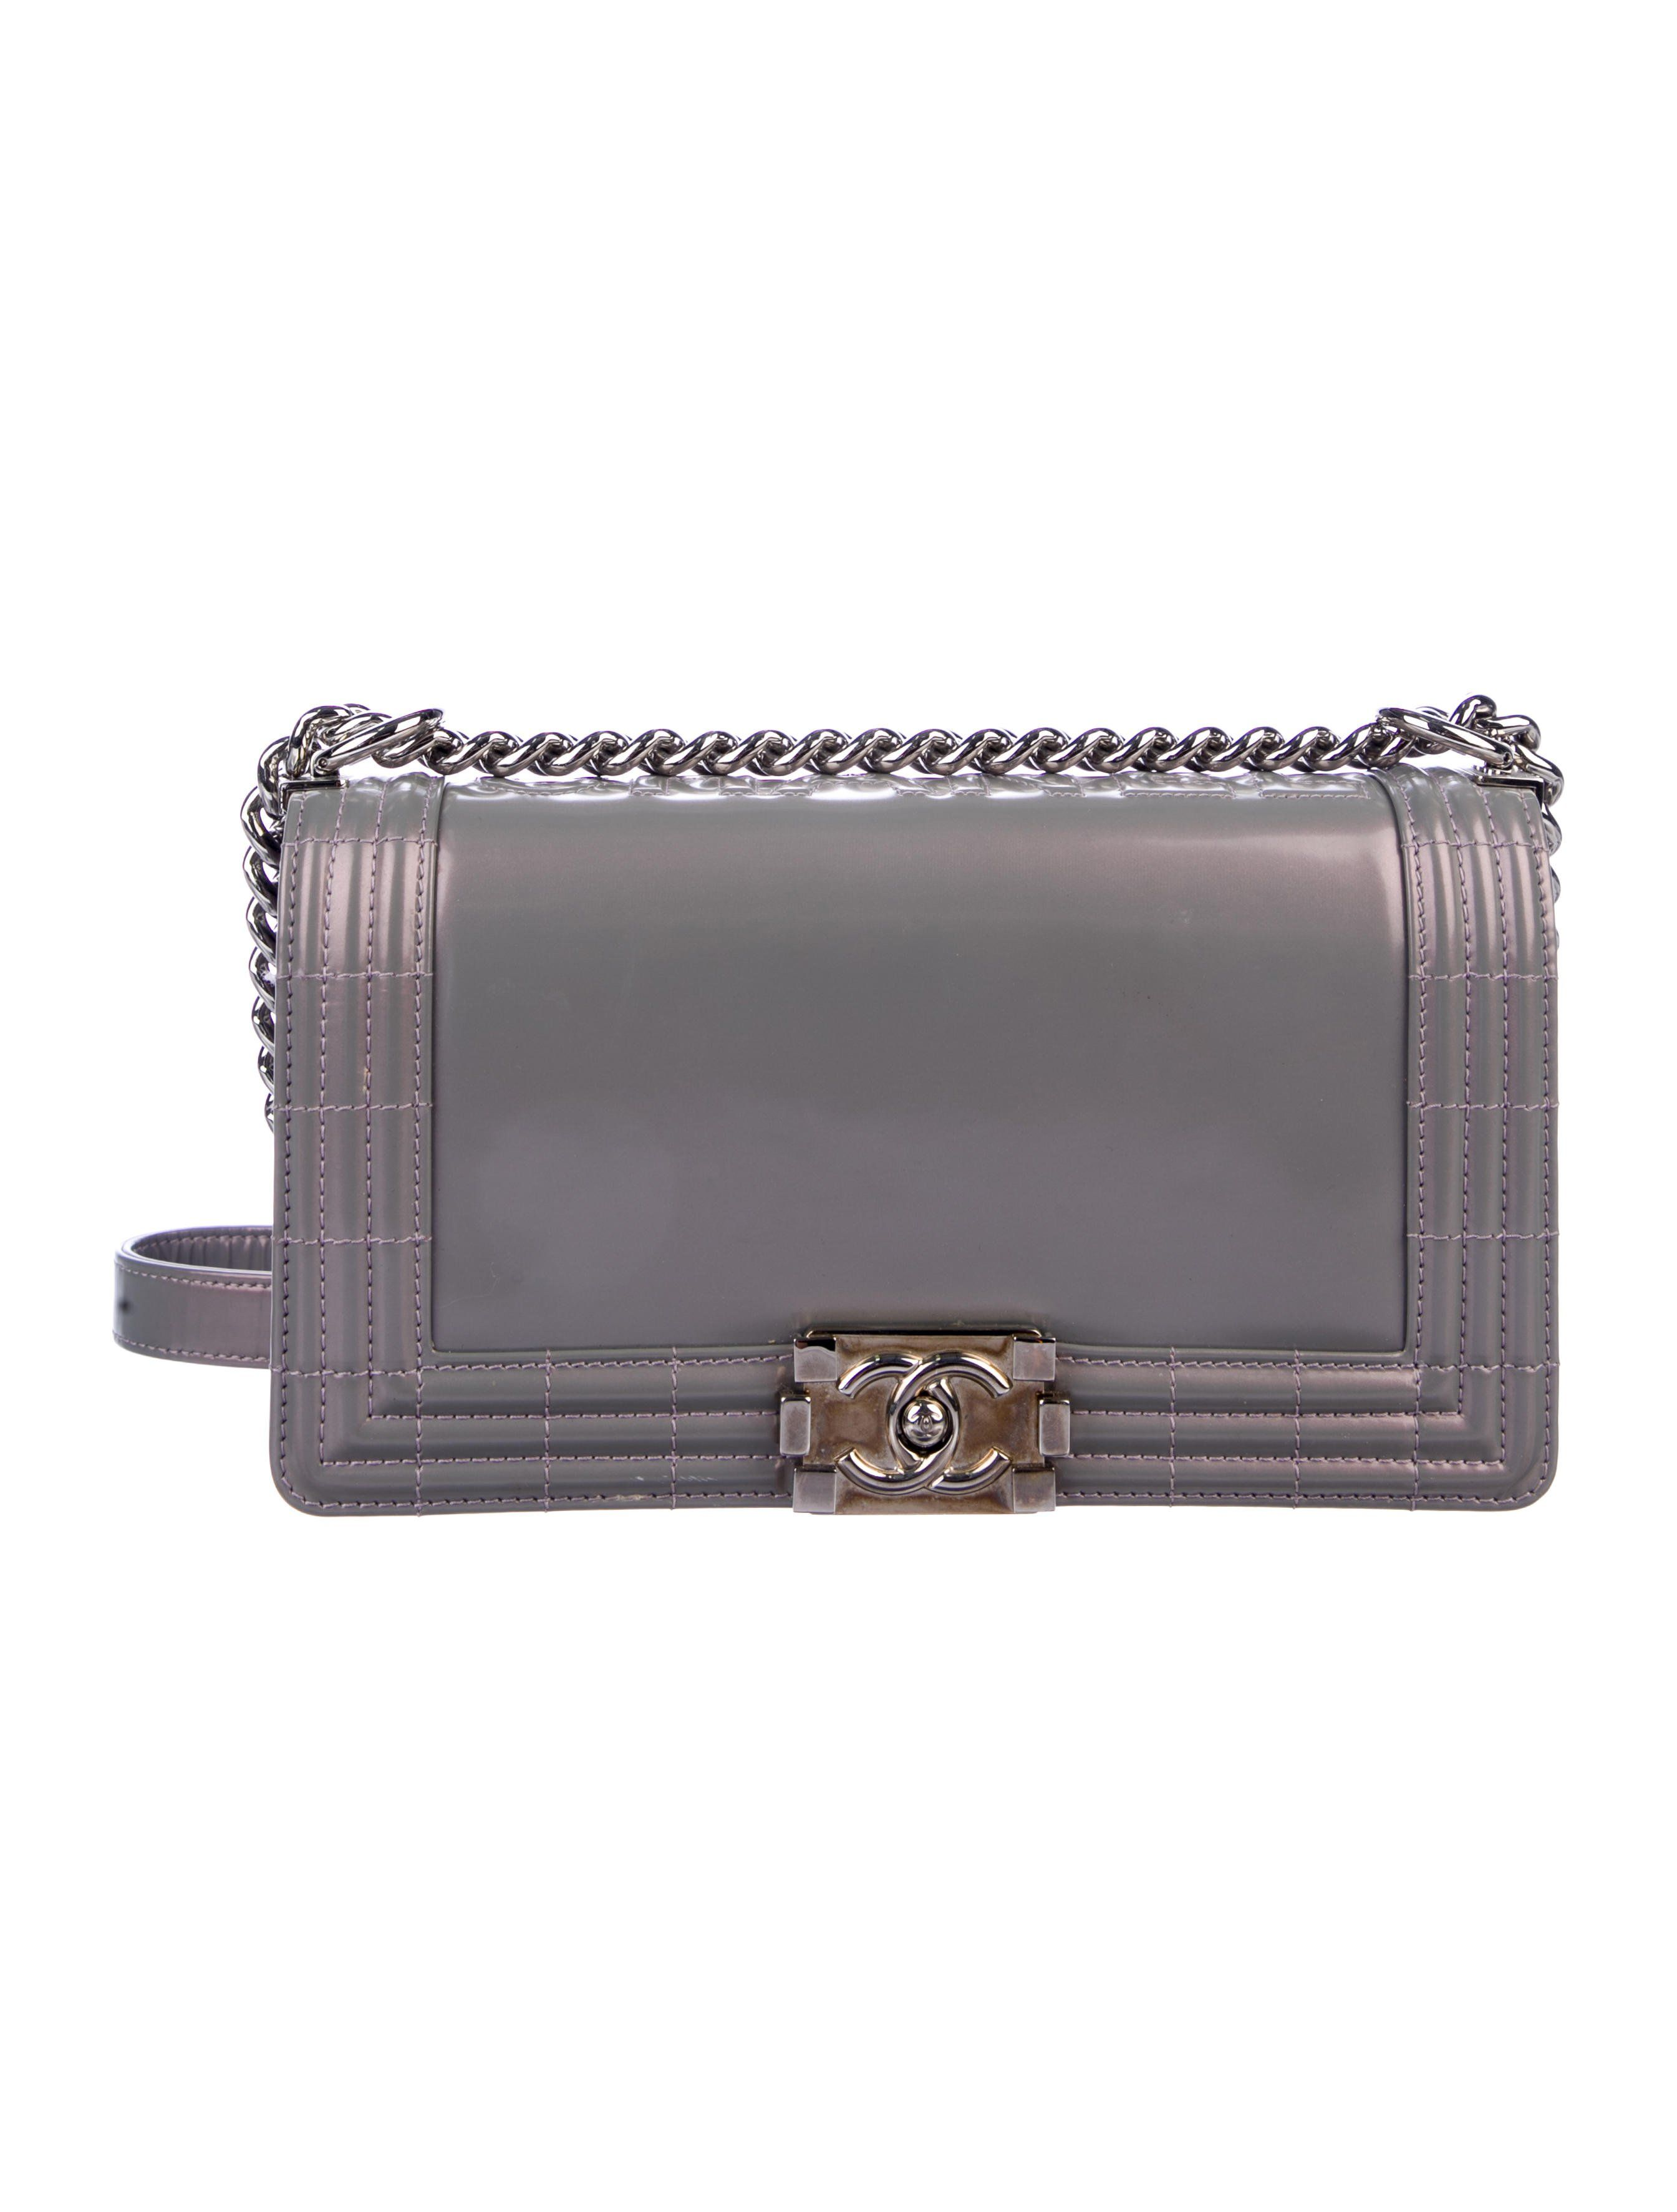 facc7b782003 Iridescent lavender patent leather Chanel Reverso Medium Boy flap bag with  silver-tone hardware,